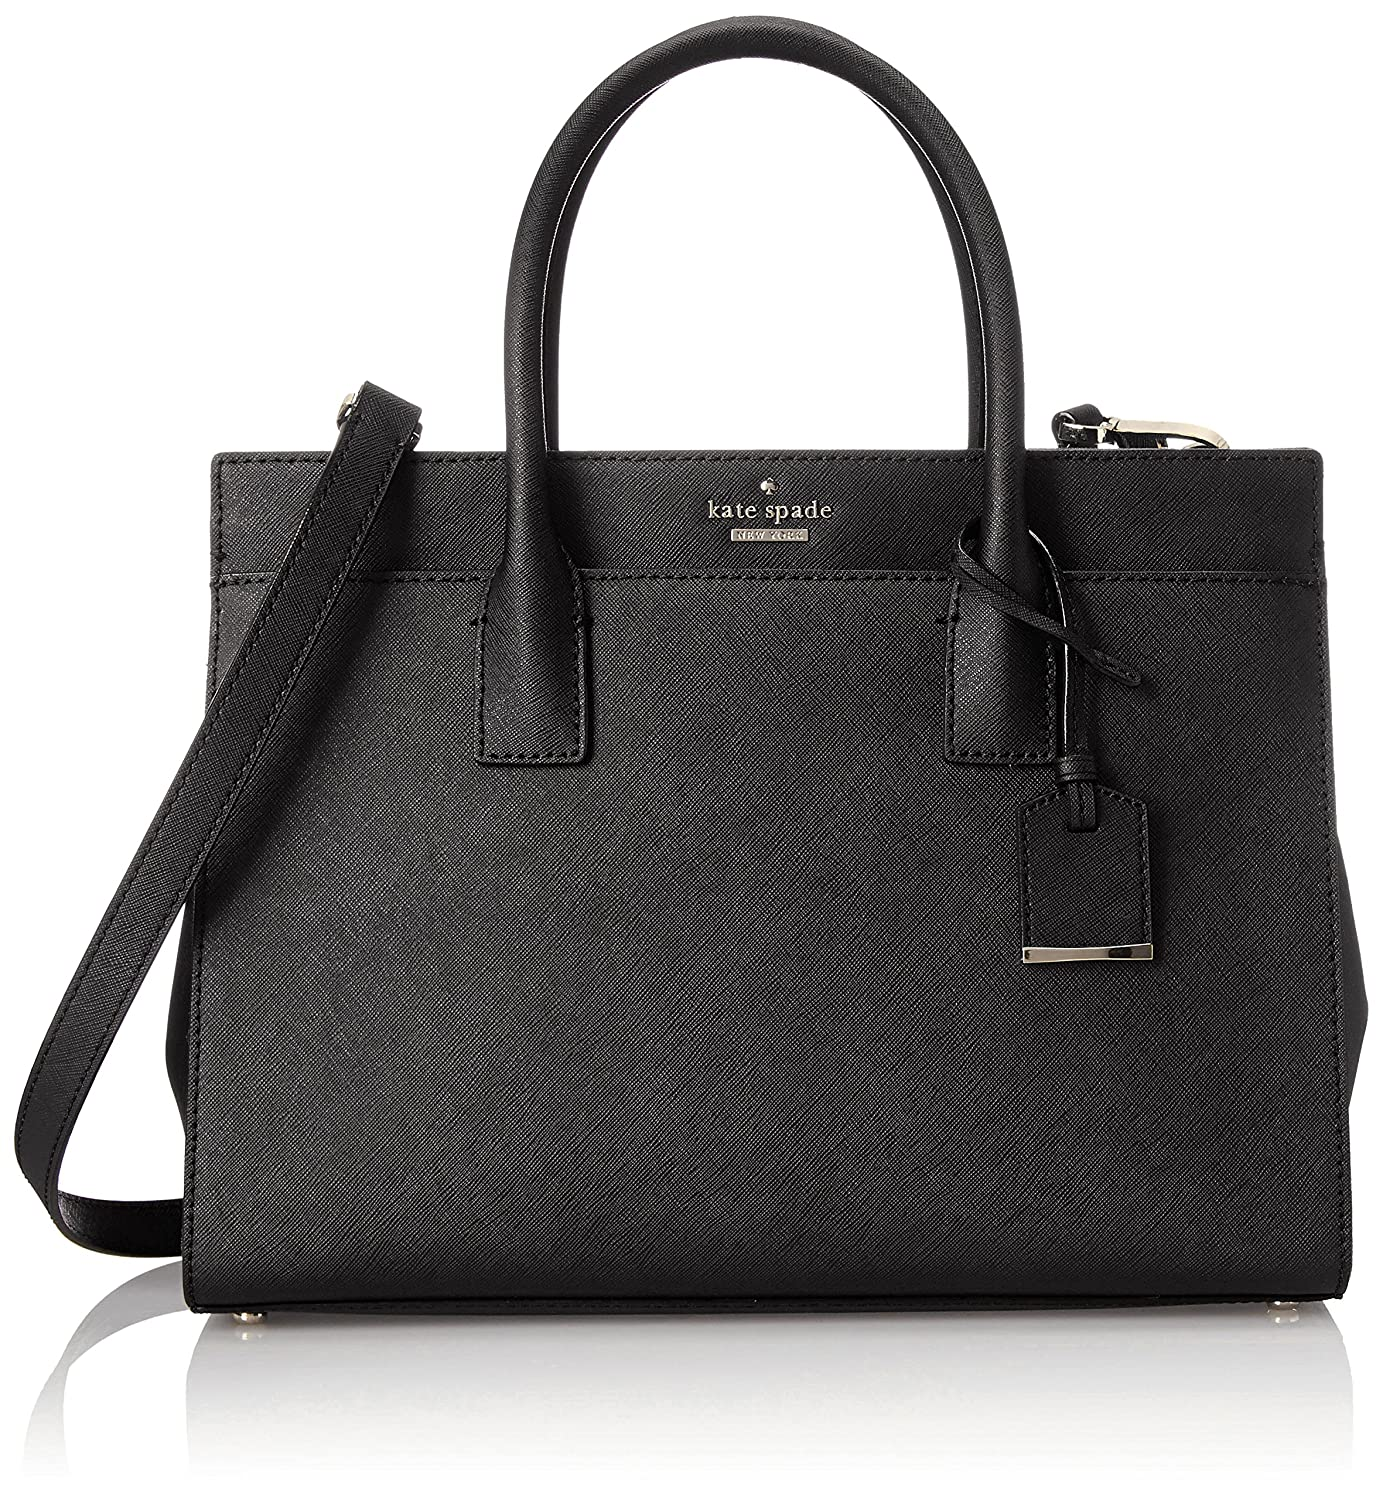 kate spade new york Cameron Street Candace Satchel Bag 9d9536e5bcc01